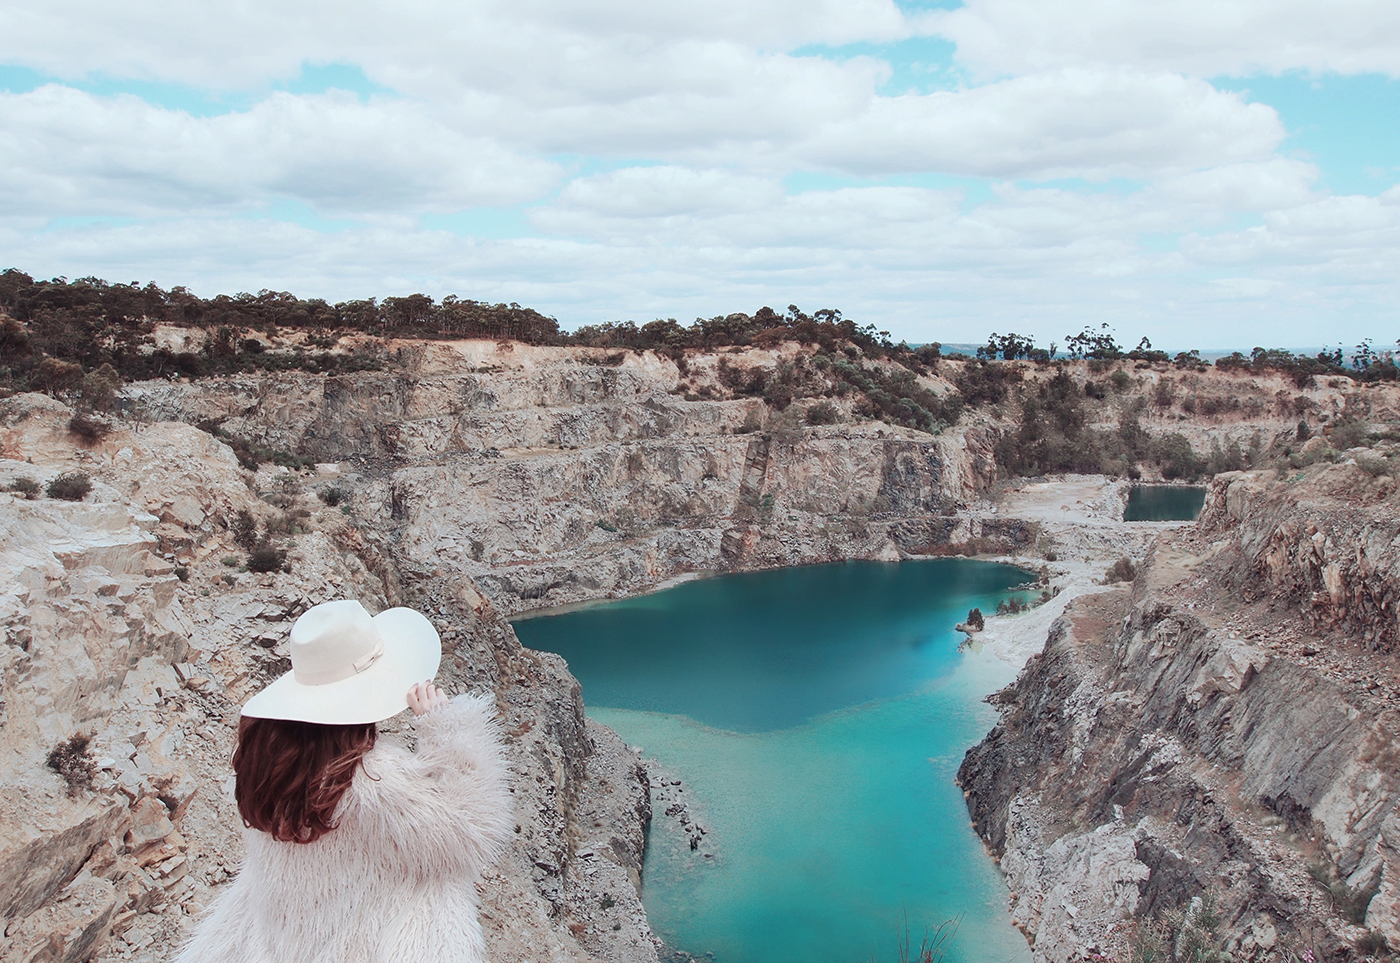 willabelle-ong-paledivision-street-style-fashion-travel-lifestyle-blog-australia-how-to-go-map-perth-red-hill-quarry-exact-location-address-western-australia-secret-hidden-spots-explore-5